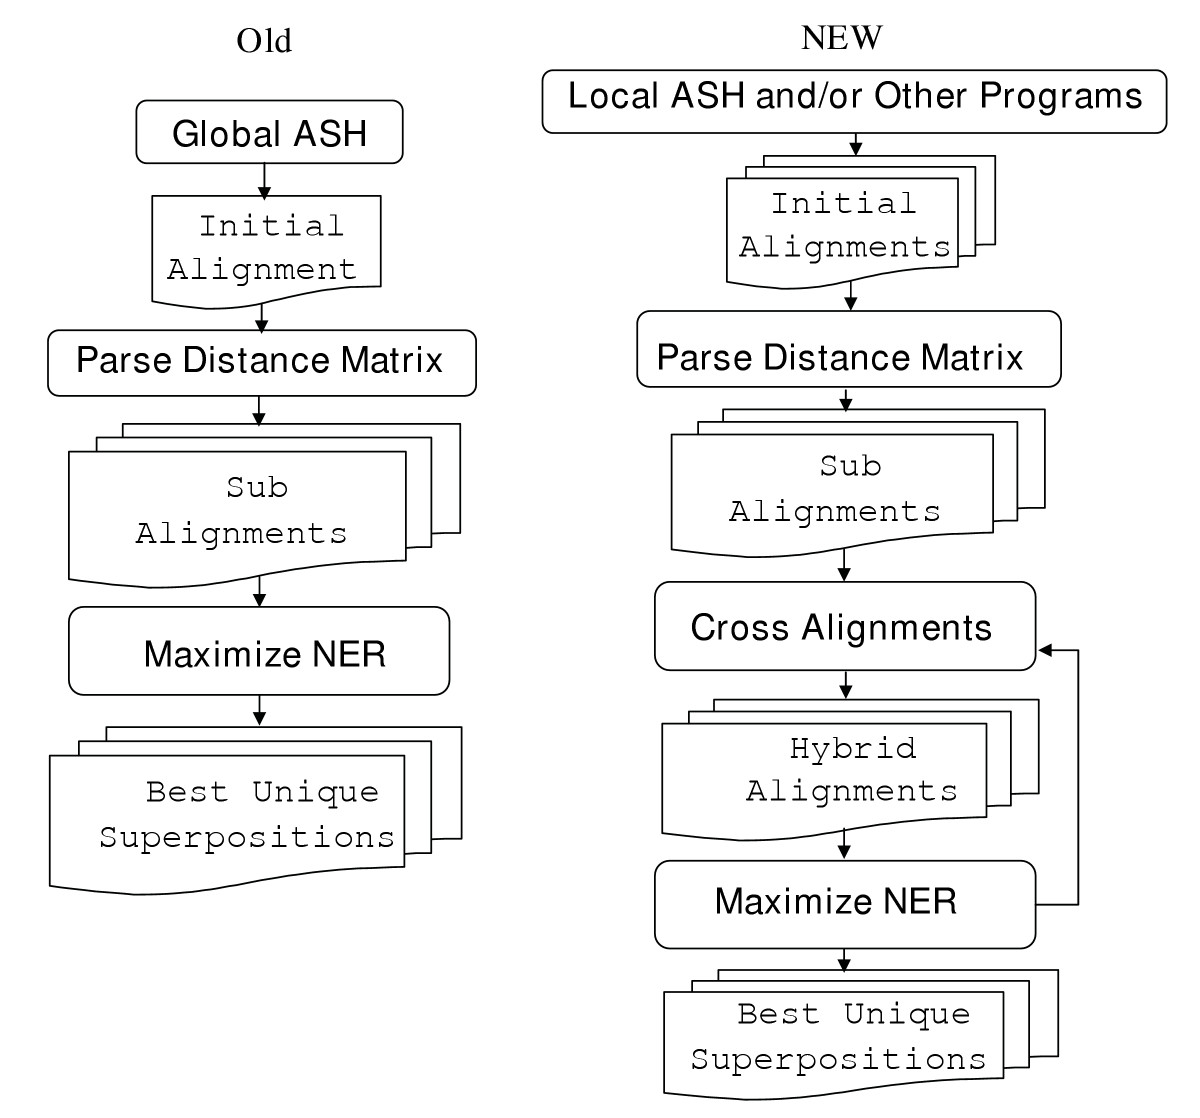 http://static-content.springer.com/image/art%3A10.1186%2F1471-2105-6-221/MediaObjects/12859_2005_Article_546_Fig1_HTML.jpg